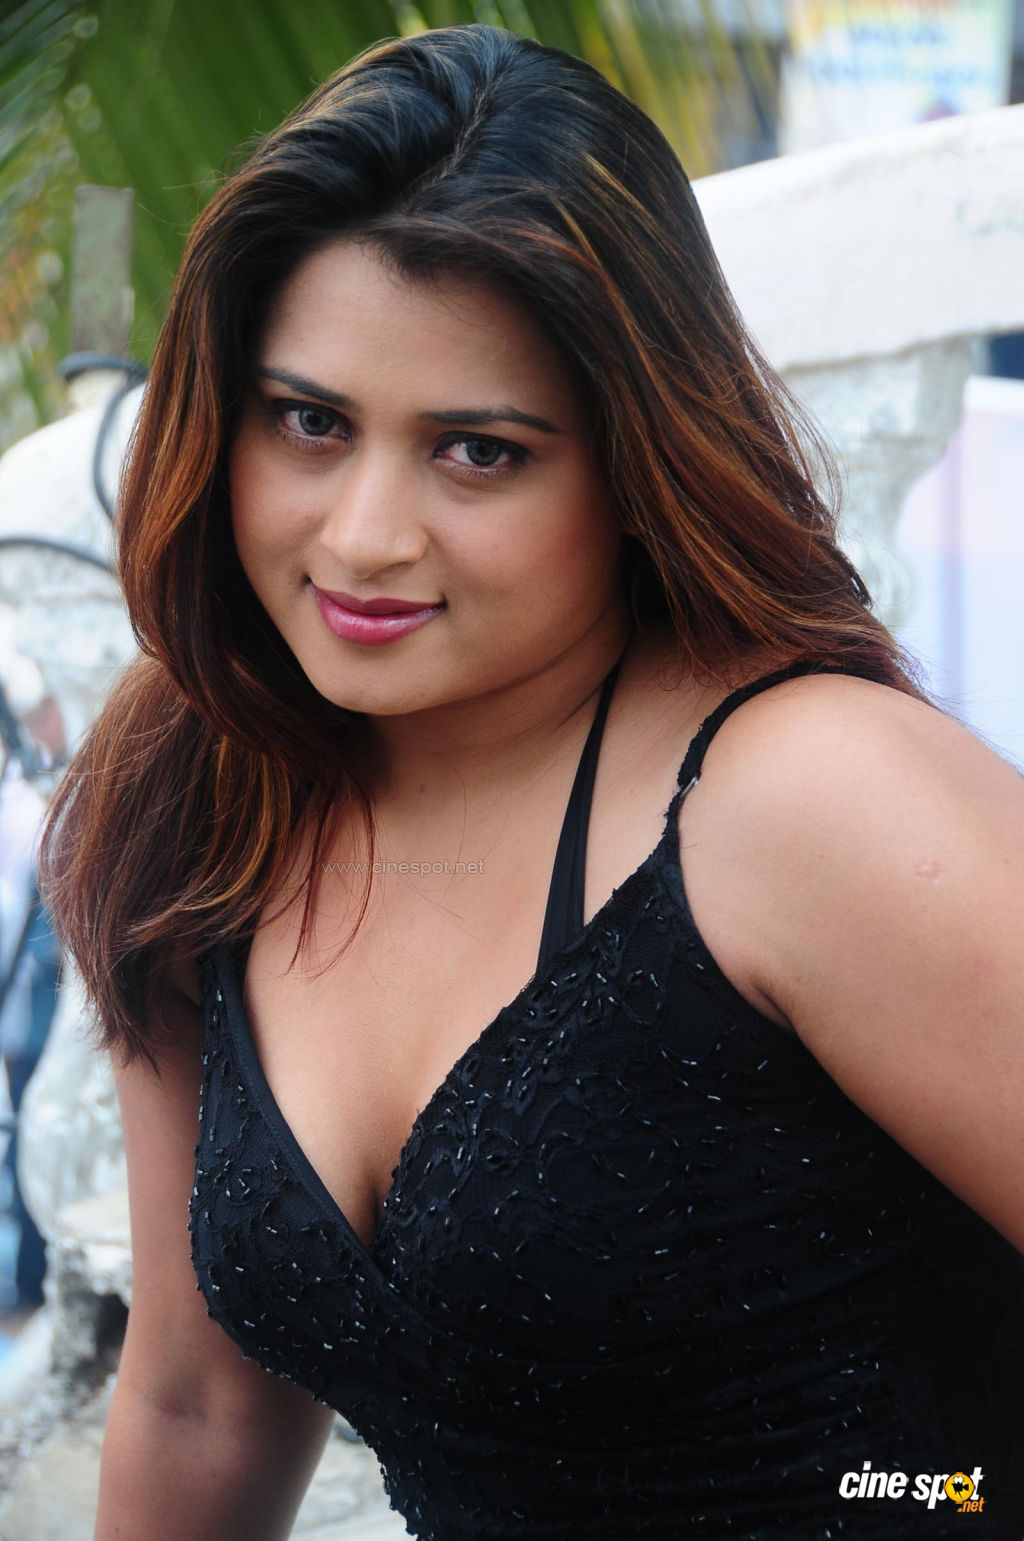 Download this Fara Stills South Talungu Actress Hot Sexy Photos Images picture